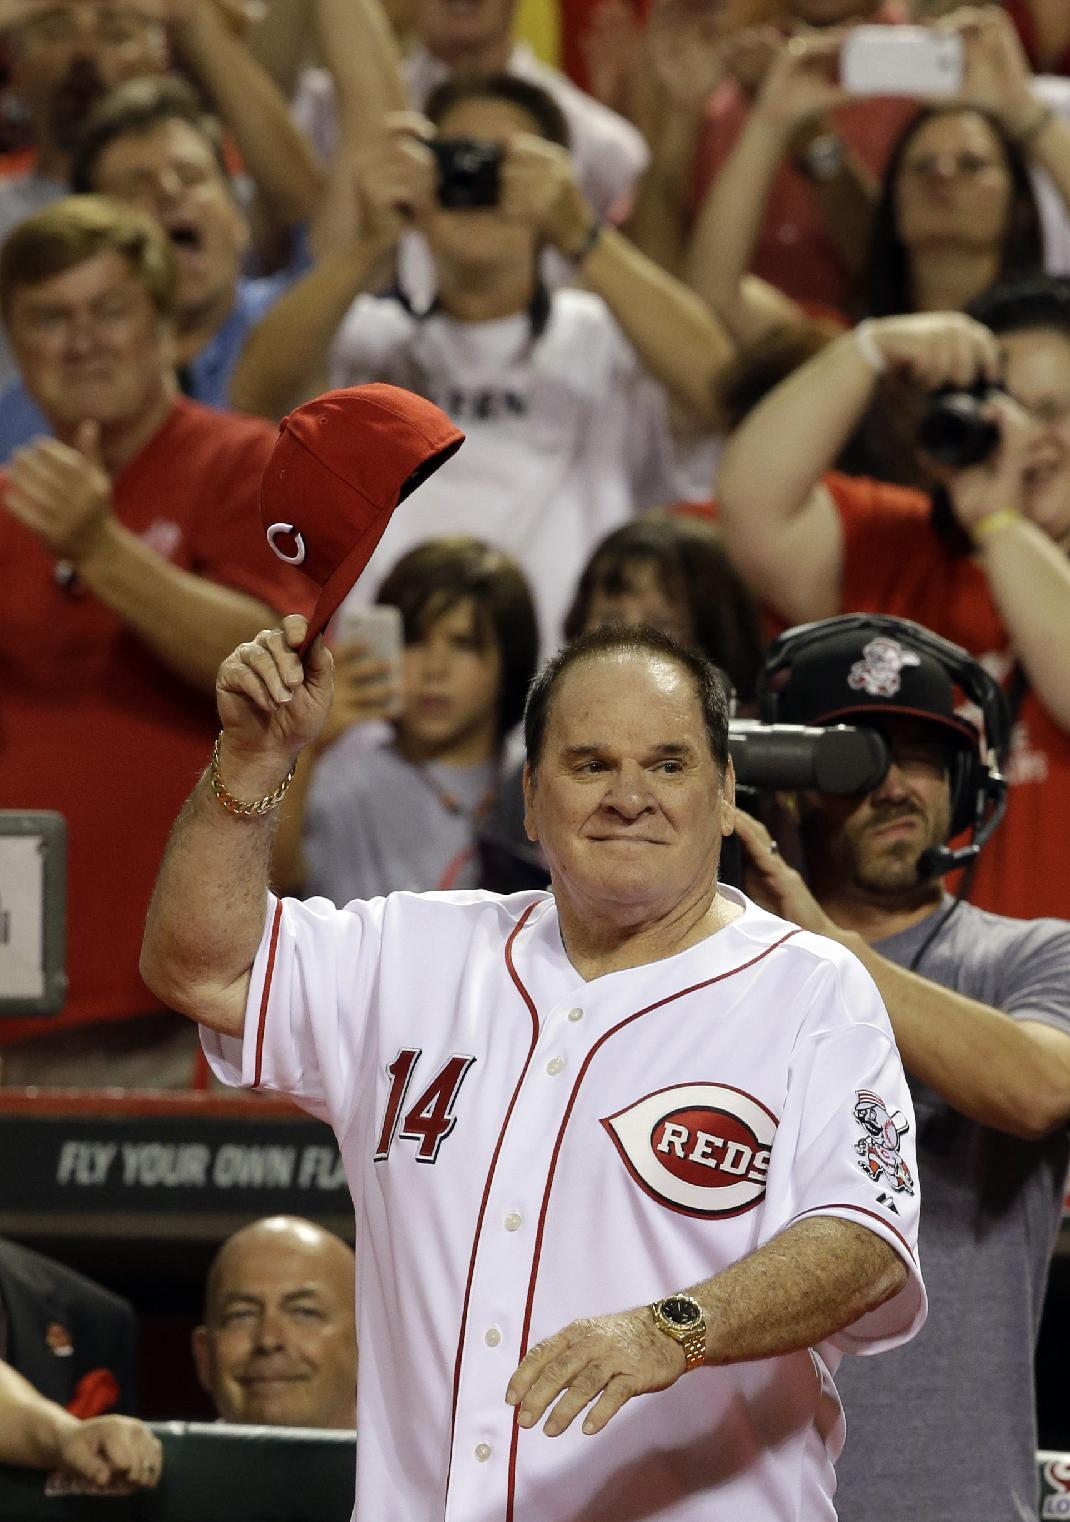 Pete Rose was one of the Reds World Series winners honored in 2013. (AP)